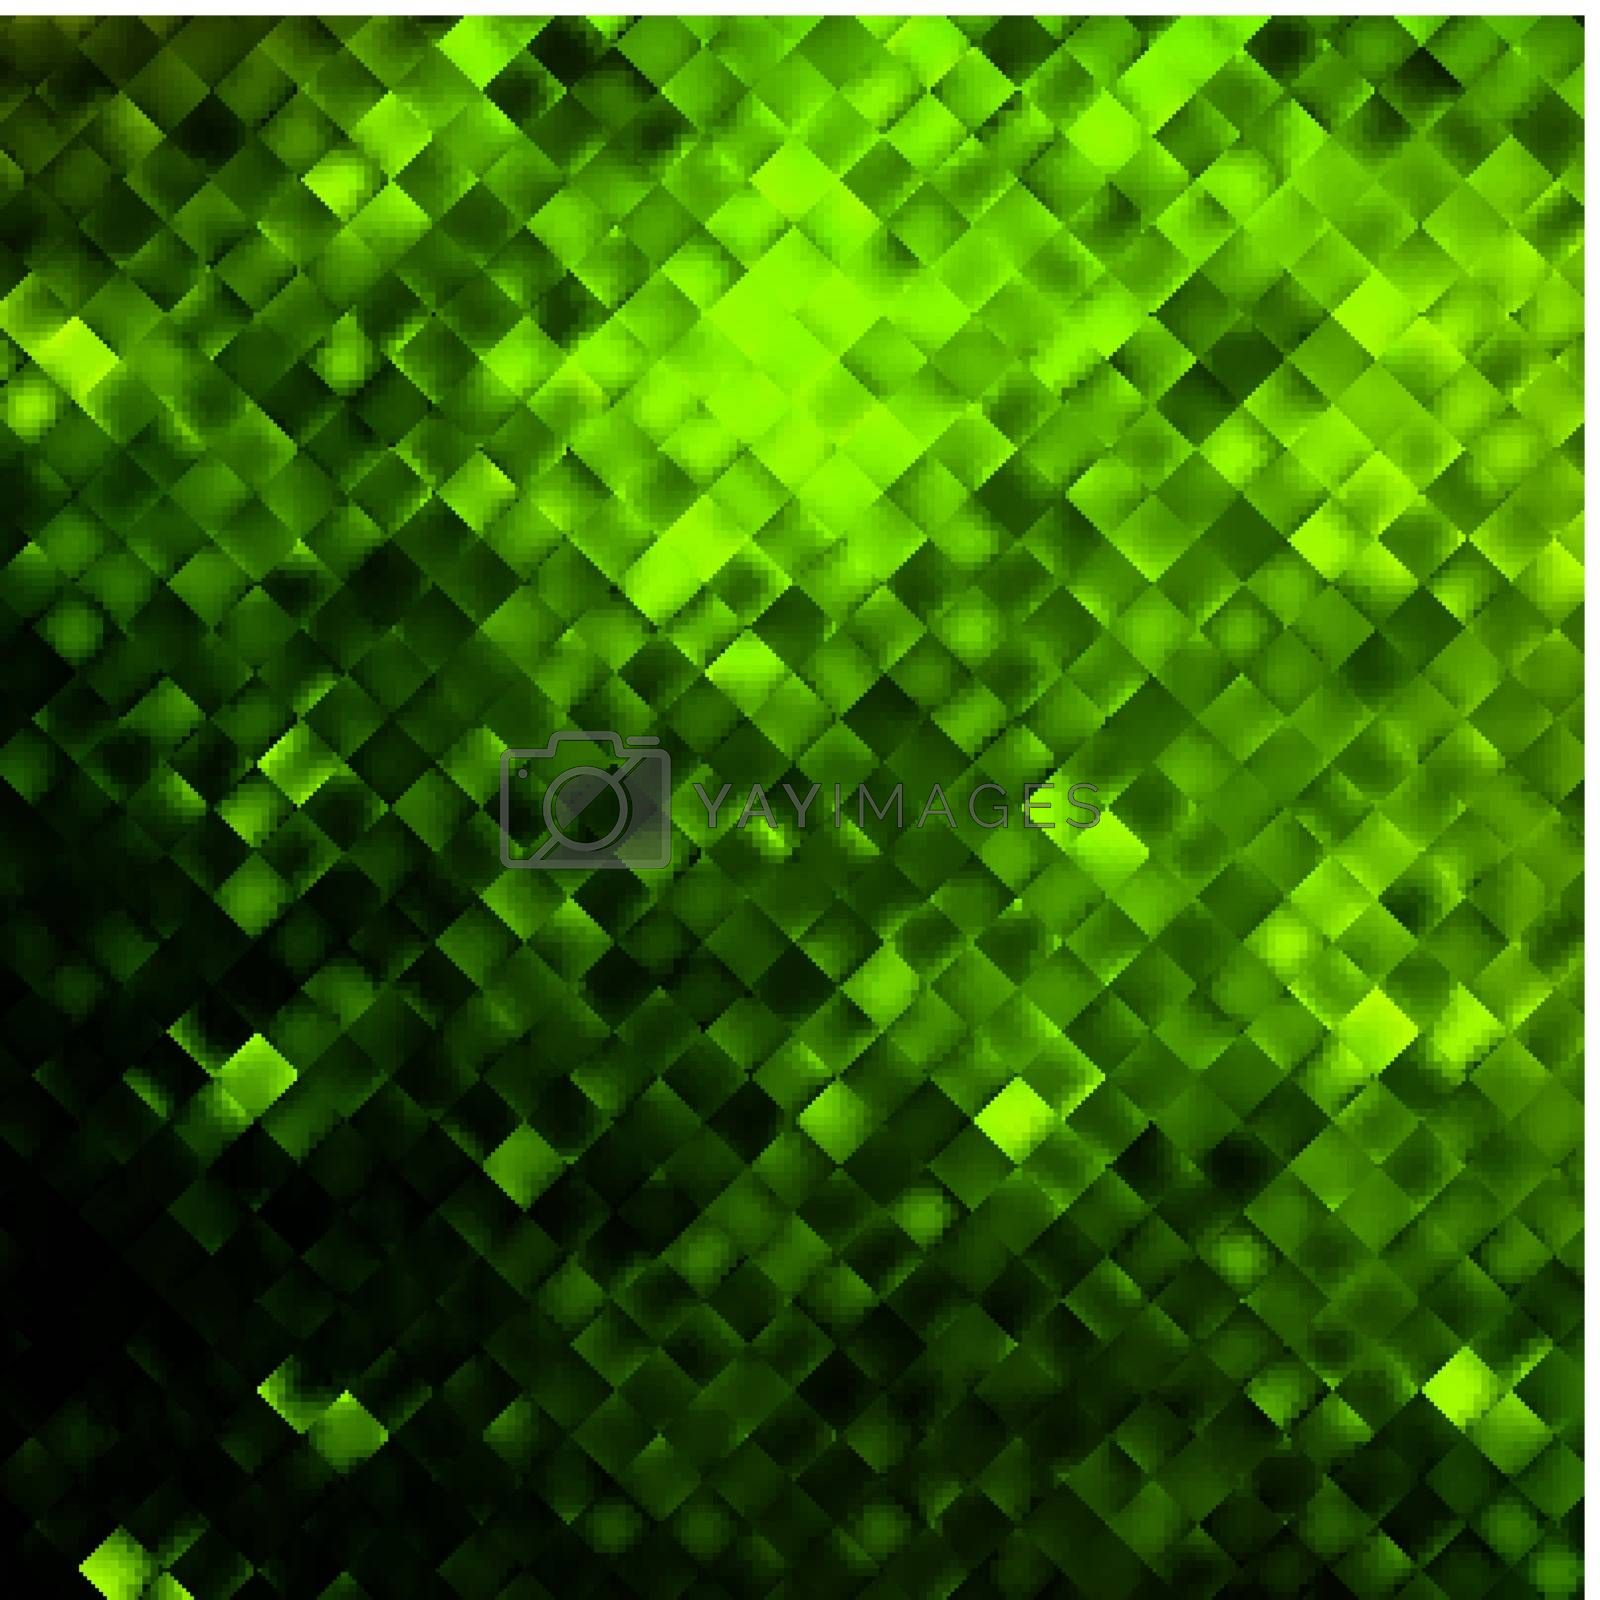 Green glitters on a soft blurred background with smooth highlights. EPS 10 vector file included